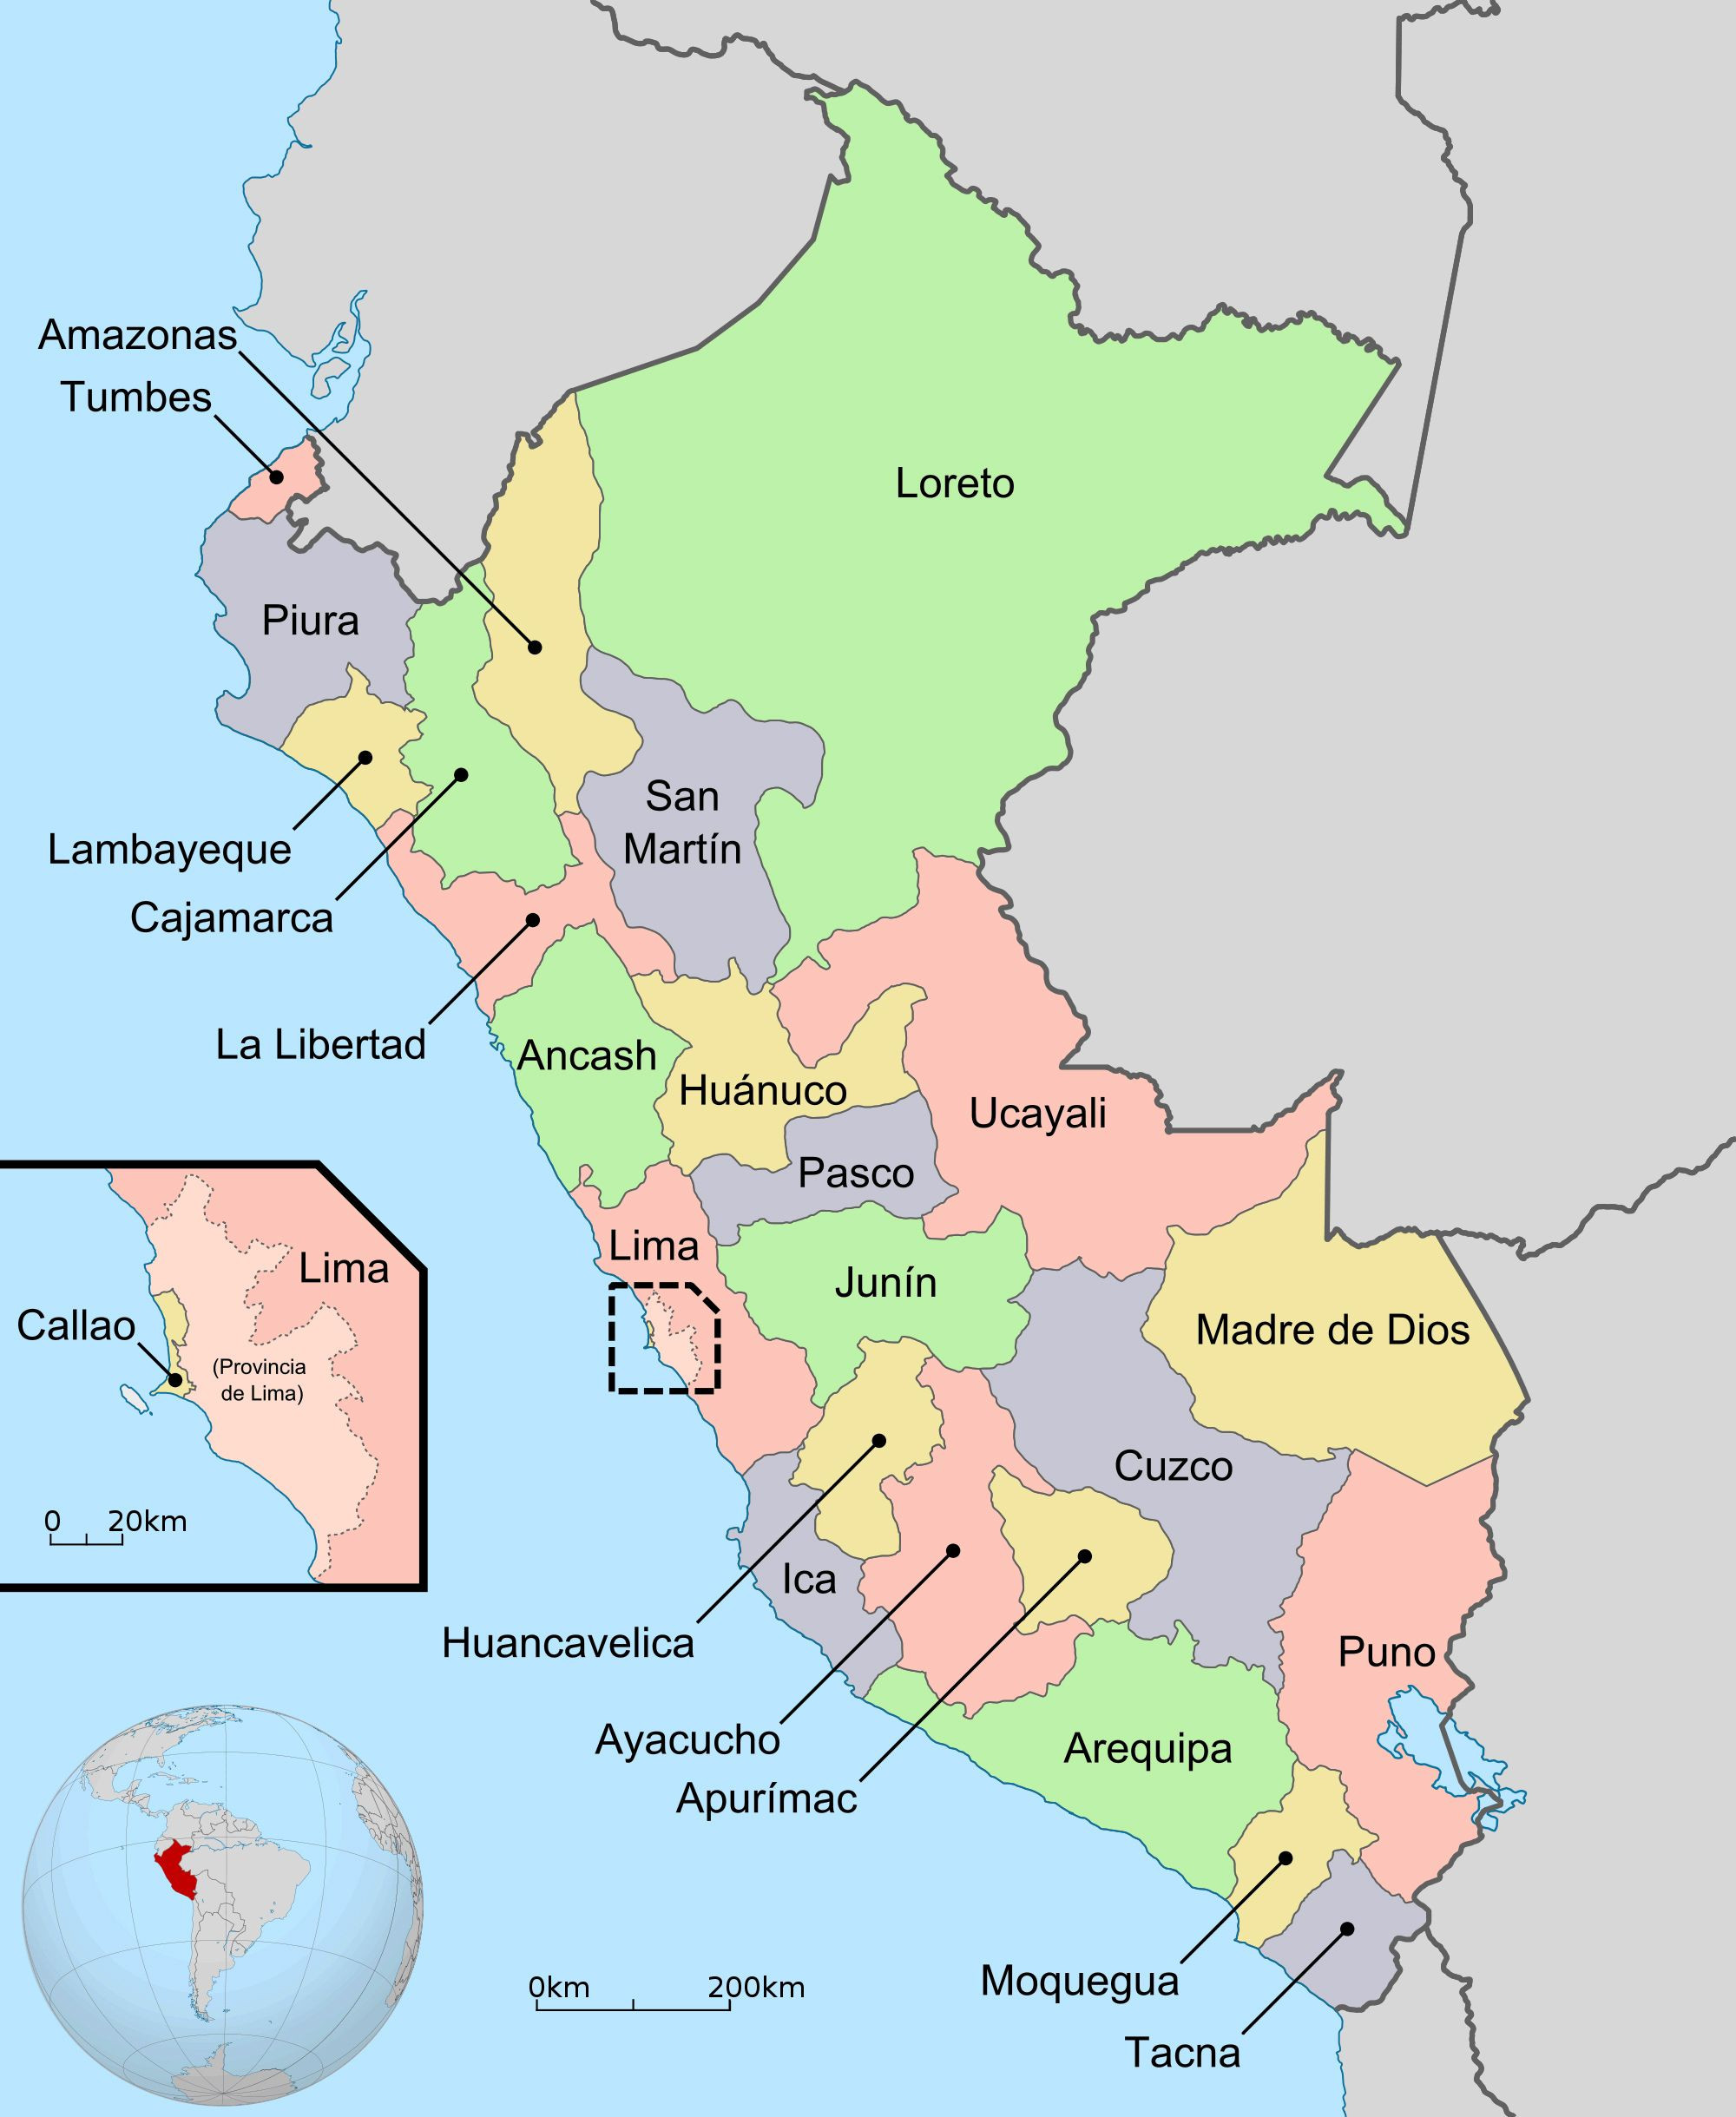 detailed regions and departments map of Peru Peru large